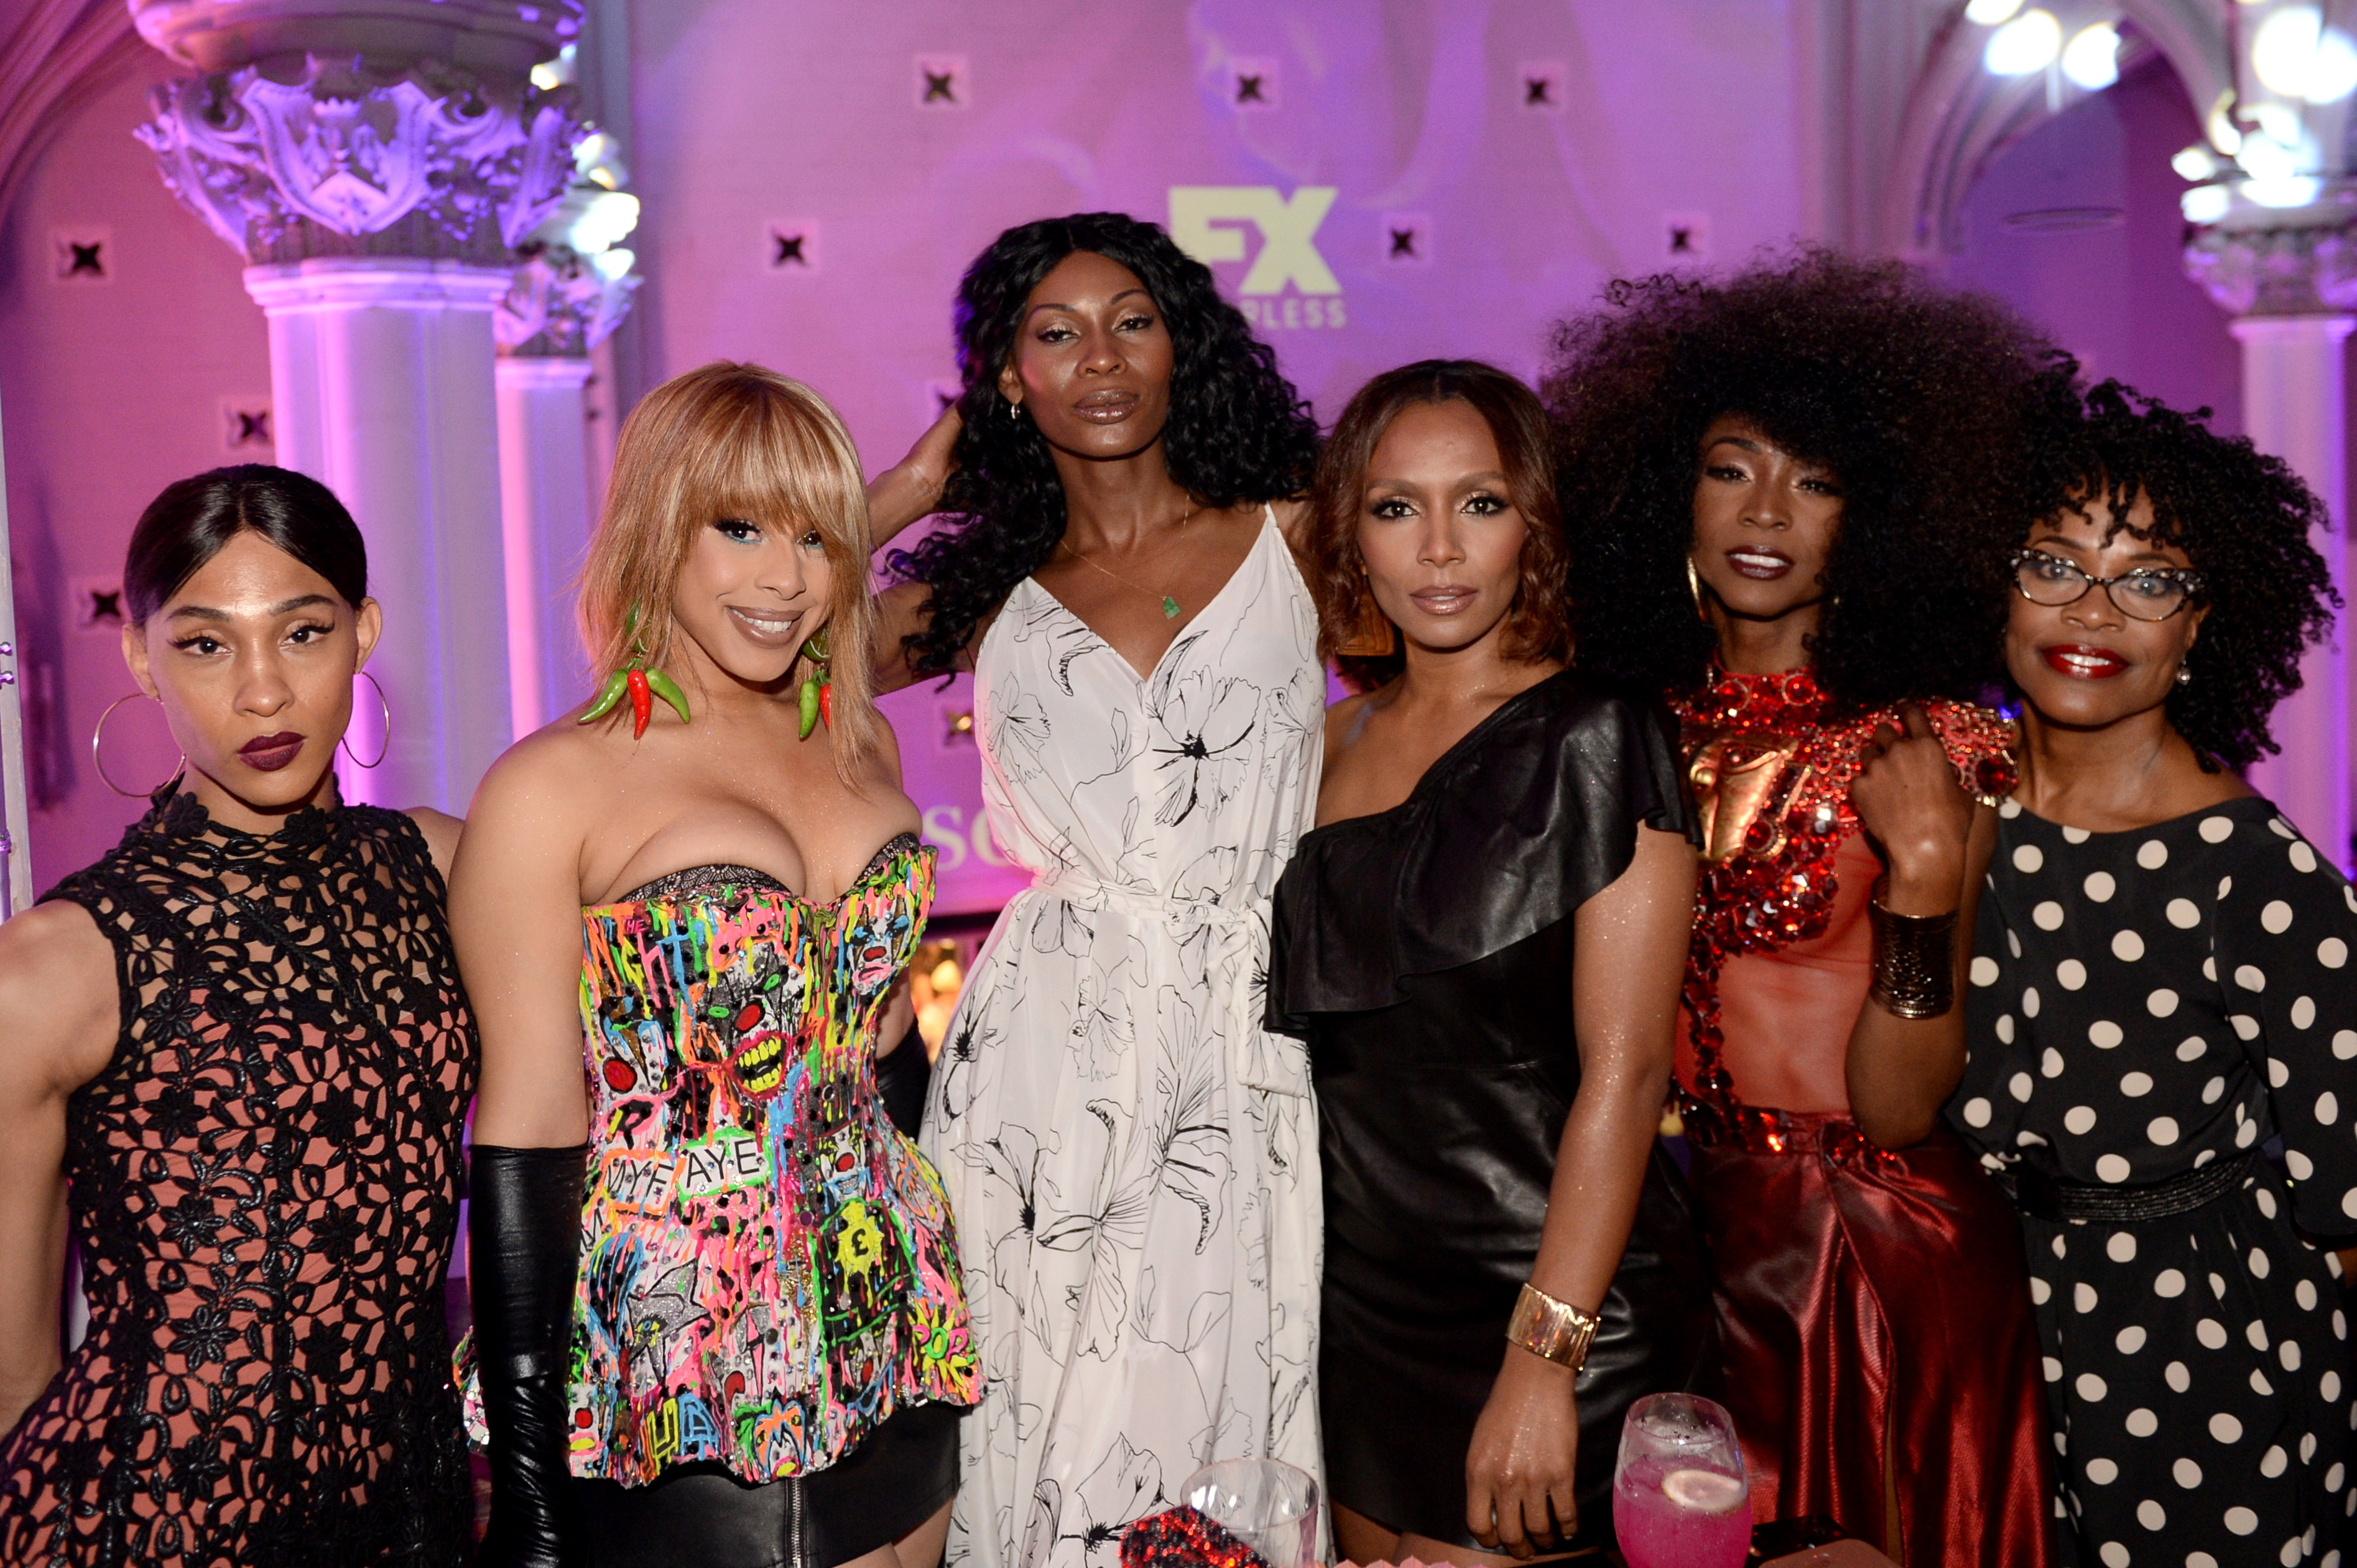 (L-R) MJ Rodriguez, Hailie Sahar, Dominique Jackson, Janet Mock, Angelica Ross, and Charlayne Woodard attend the FX 'Pose' Ball in Harlem on June 2, 2018 in New York City. (Getty Images)